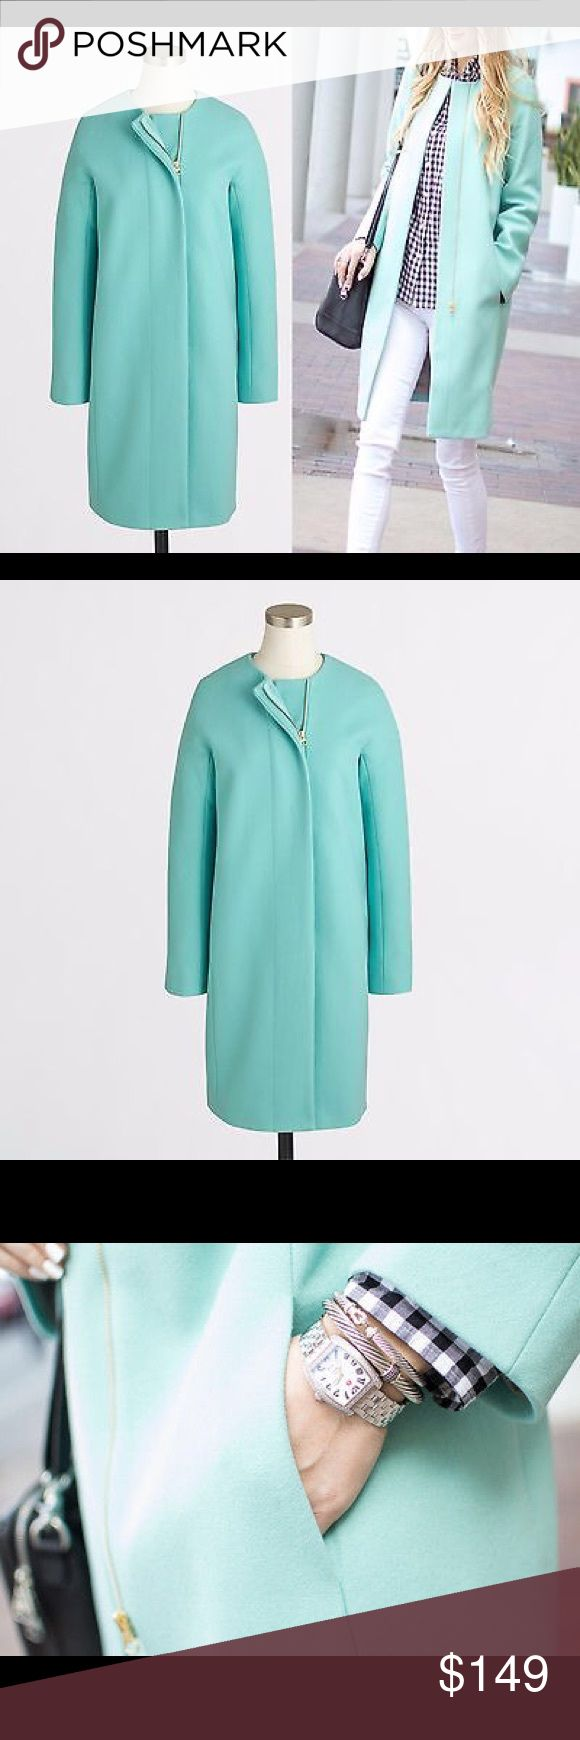 J Crew Wool coat New with tag. J crew factory wool coat J. Crew Jackets & Coats Pea Coats